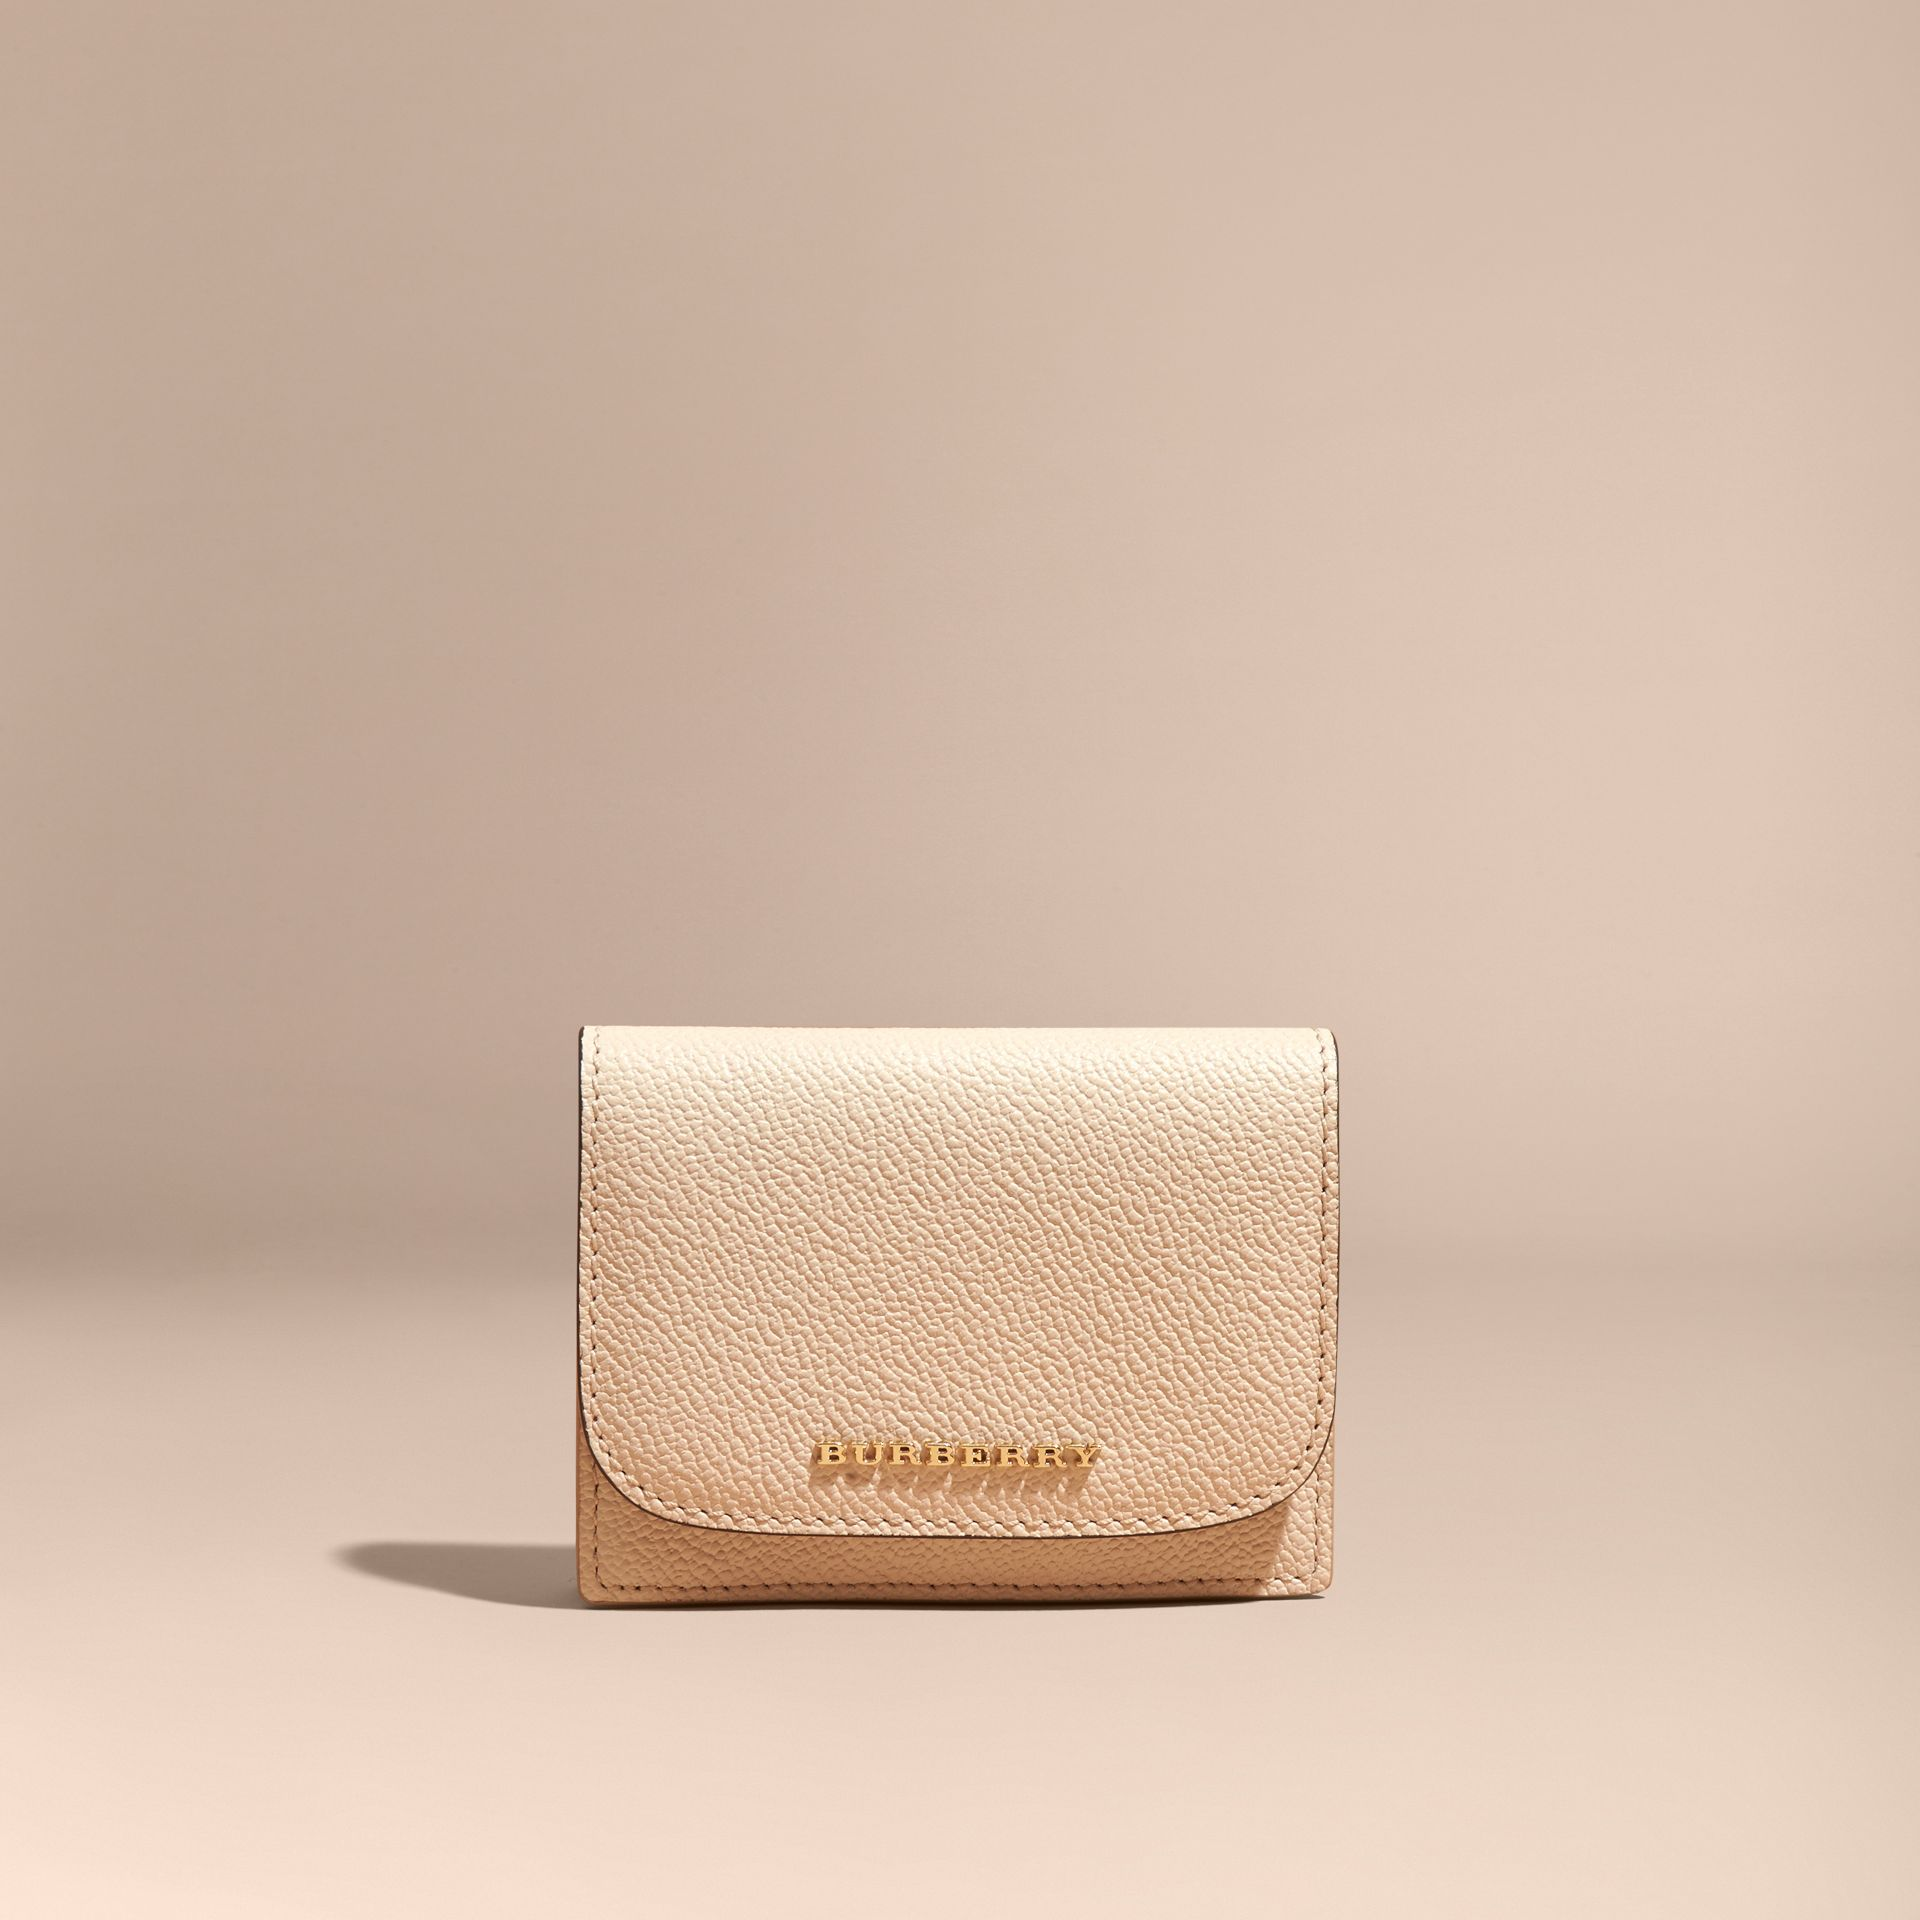 Grainy Leather Card Case in Limestone - Women | Burberry - gallery image 6